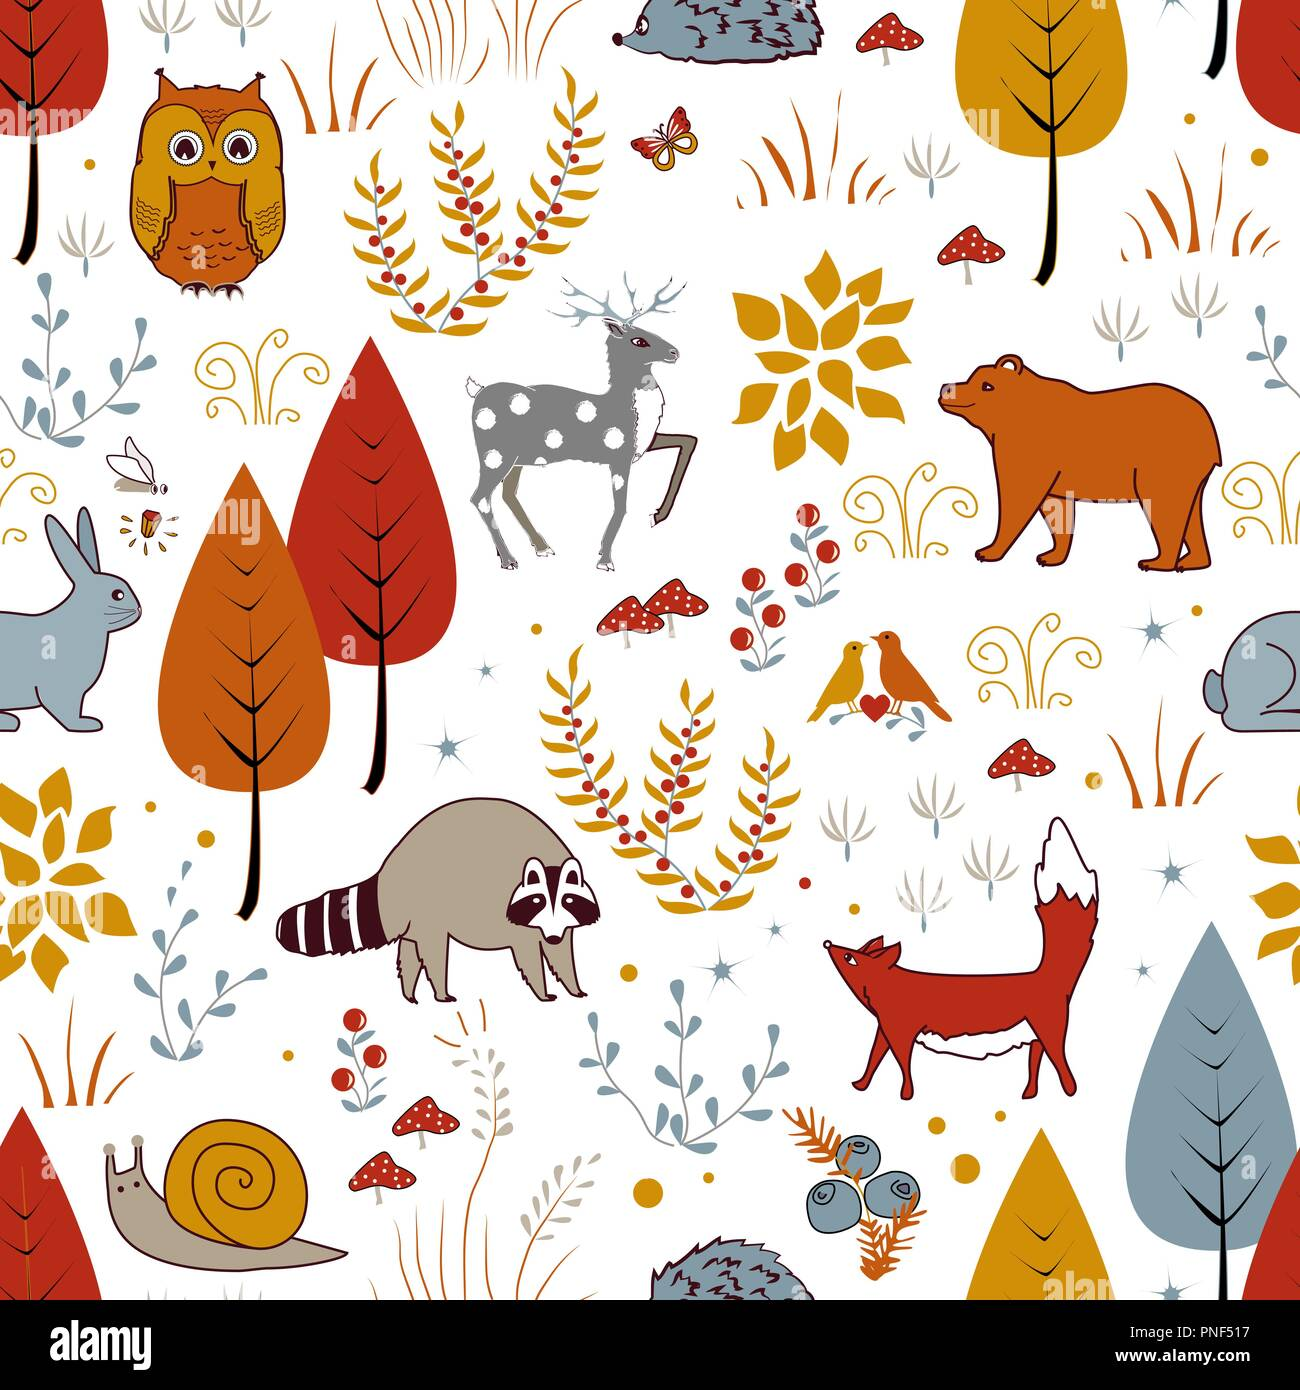 Cute Vector Seamless Pattern With Forest Plants Birds Bear Deer Raccoon And Fox Kids Autumn Background Vector Illustration Stock Vector Image Art Alamy